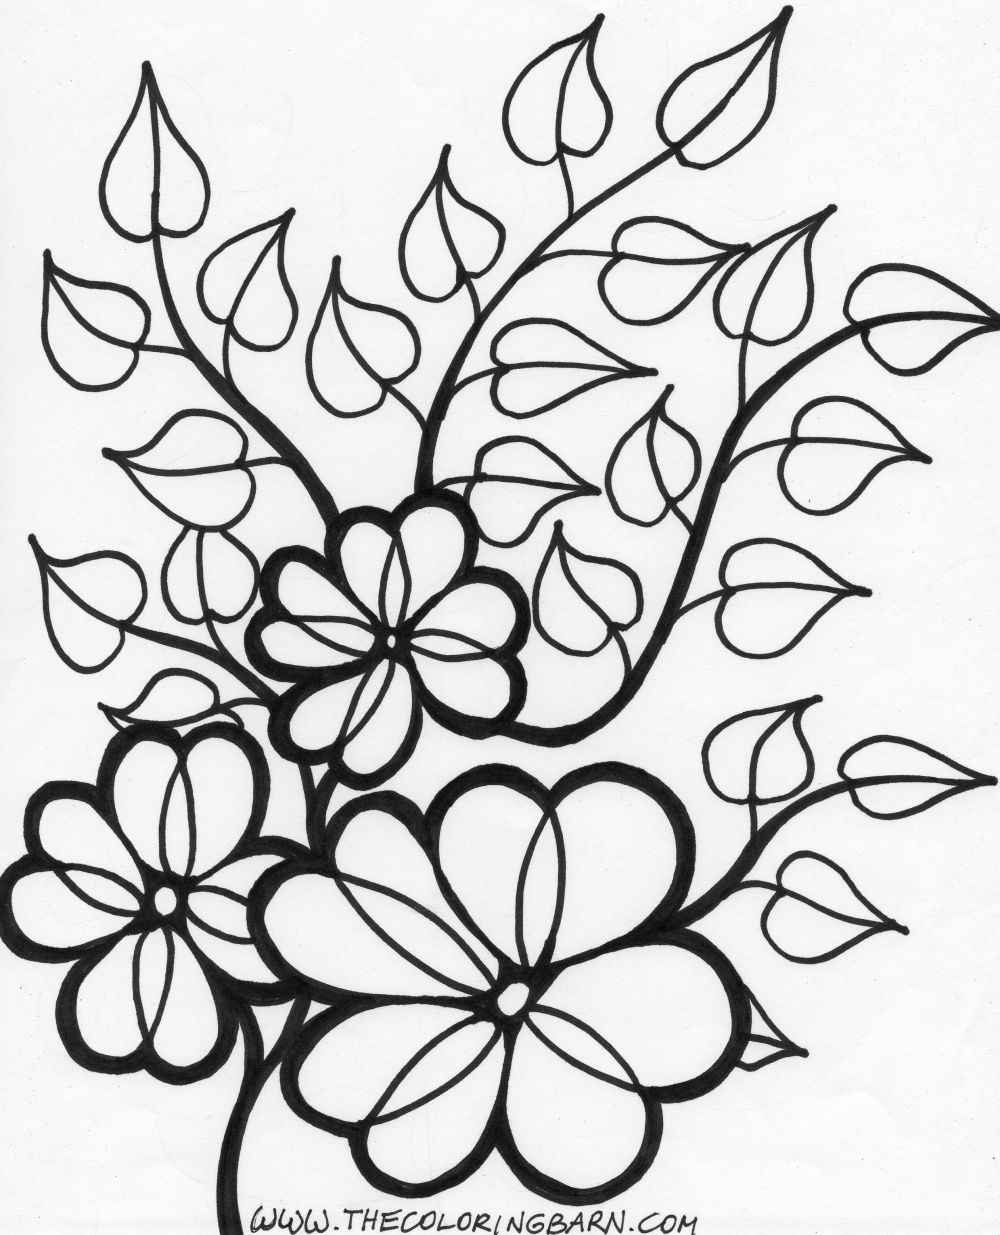 1000x1235 Innovative Coloring Picture Of Flowers Preschool To Pretty Free